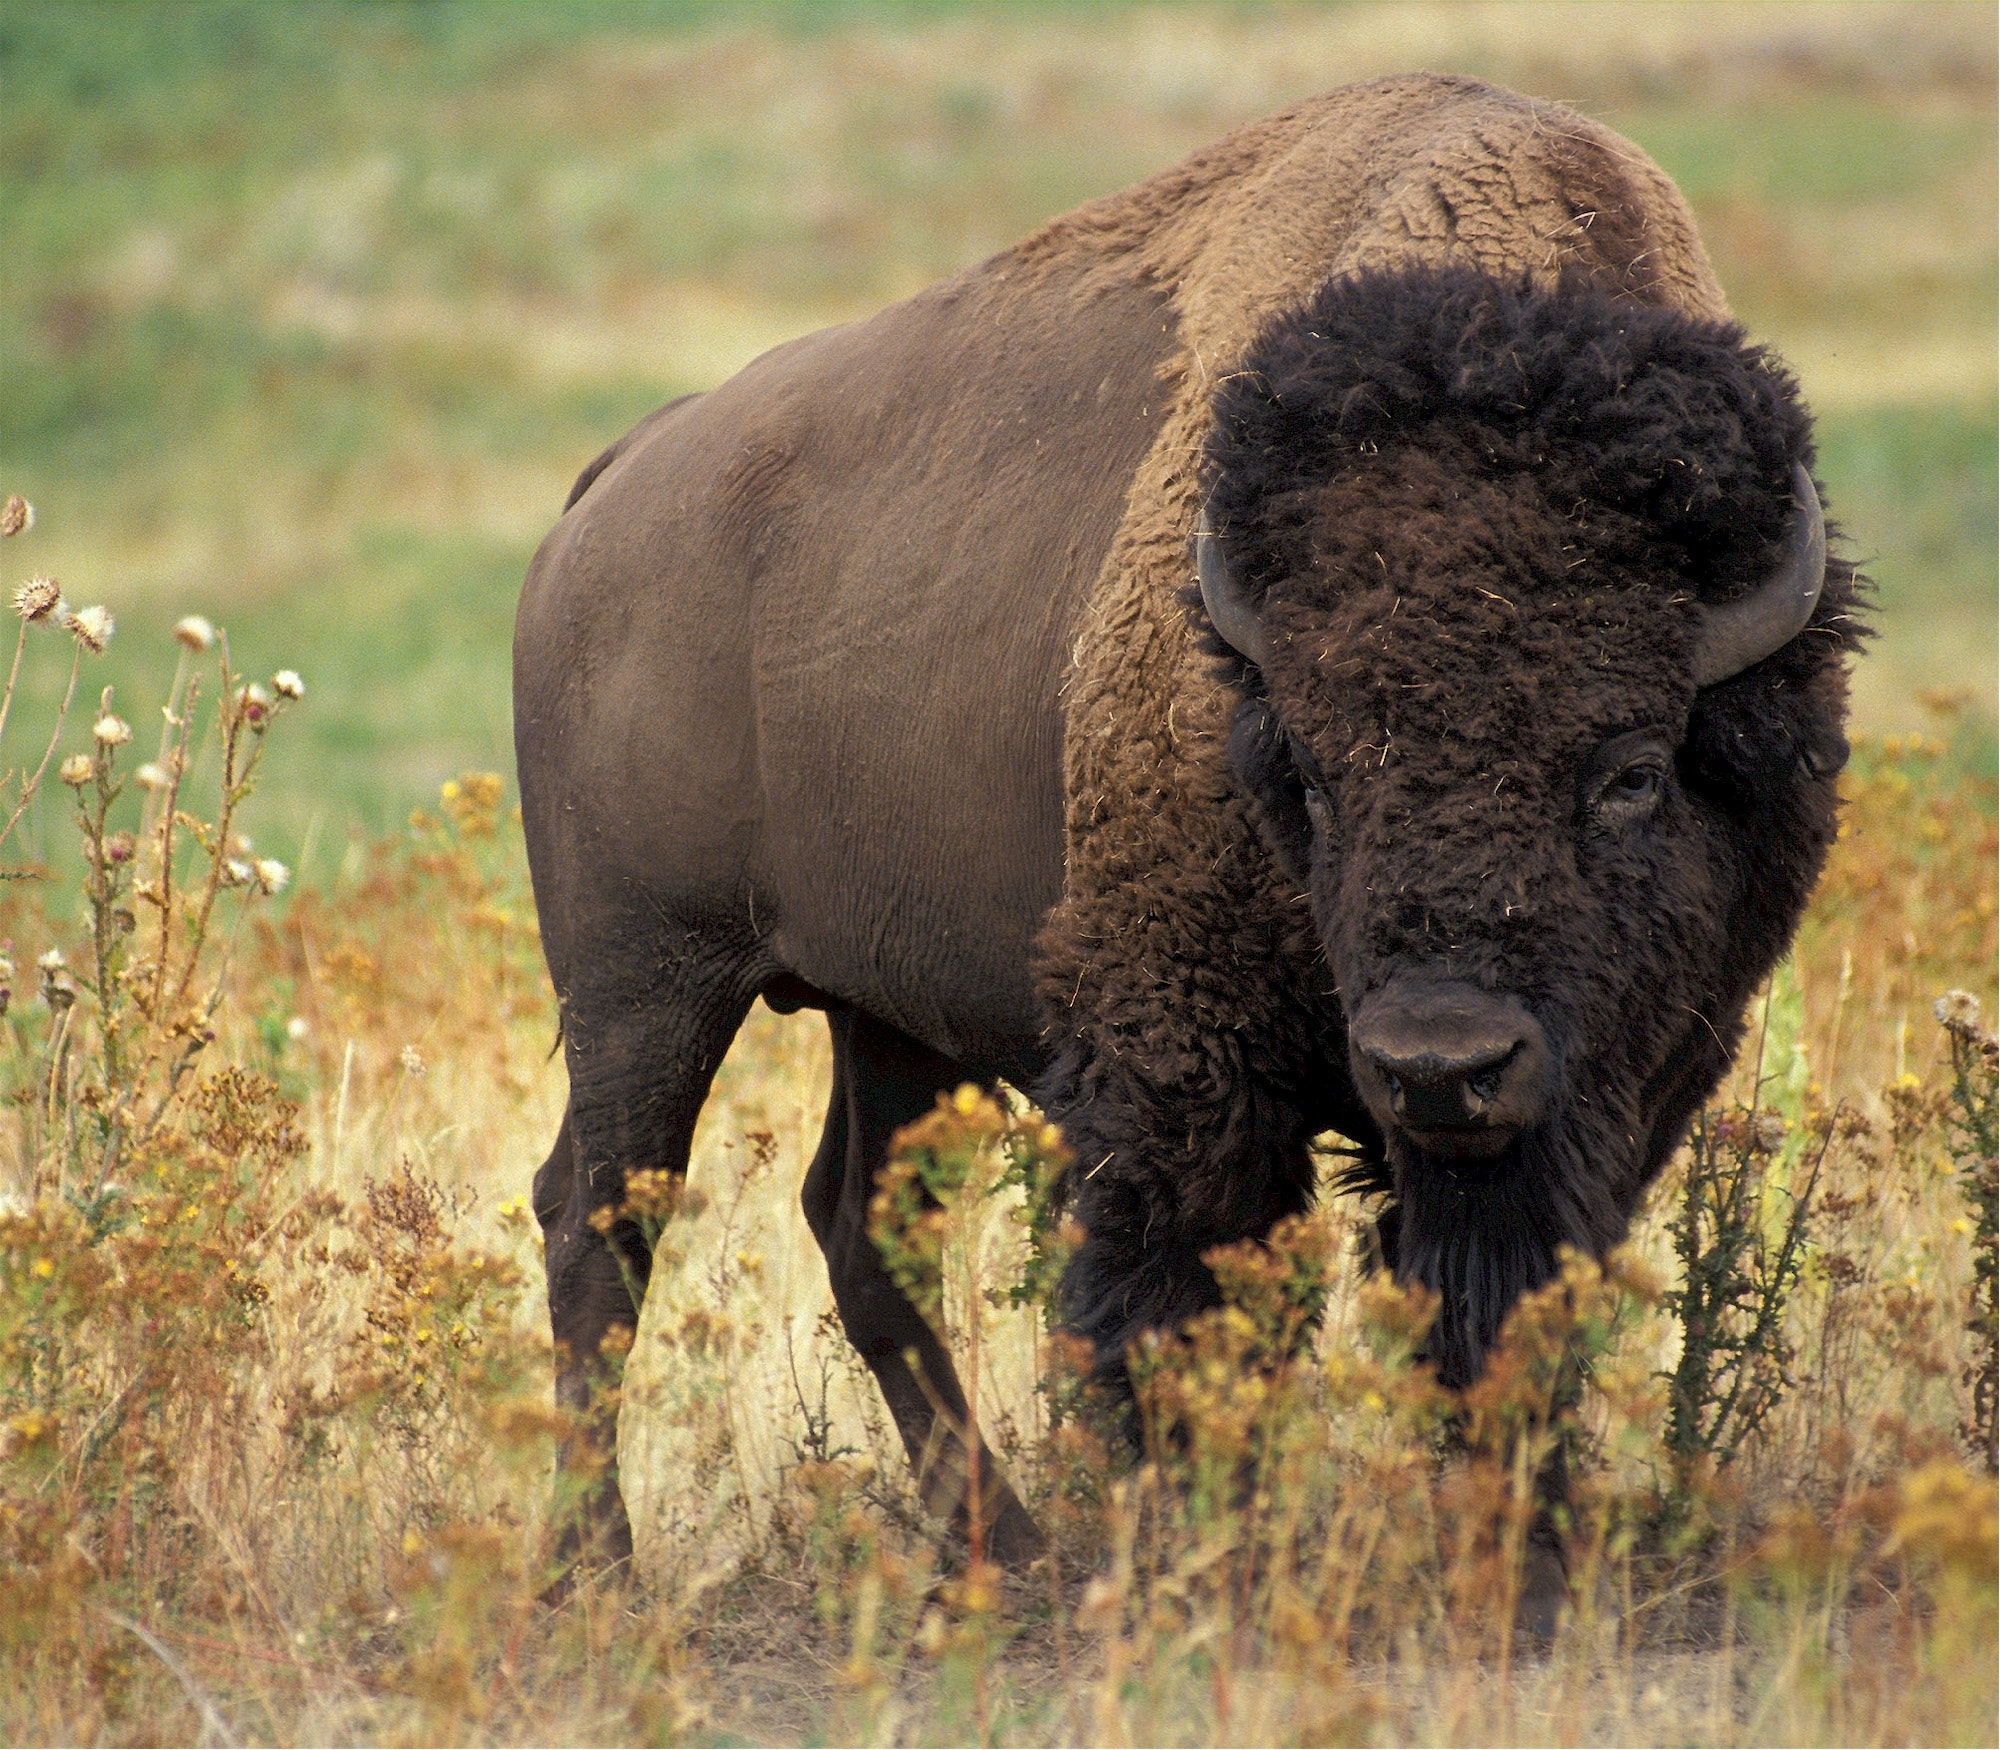 The grass-fed buffalo at the Great Plains Buffalo Company in South Dakota help preserve the grassland, which is being decimated by industrial farming. Less than four percent of the original tallgrass prairie remains.